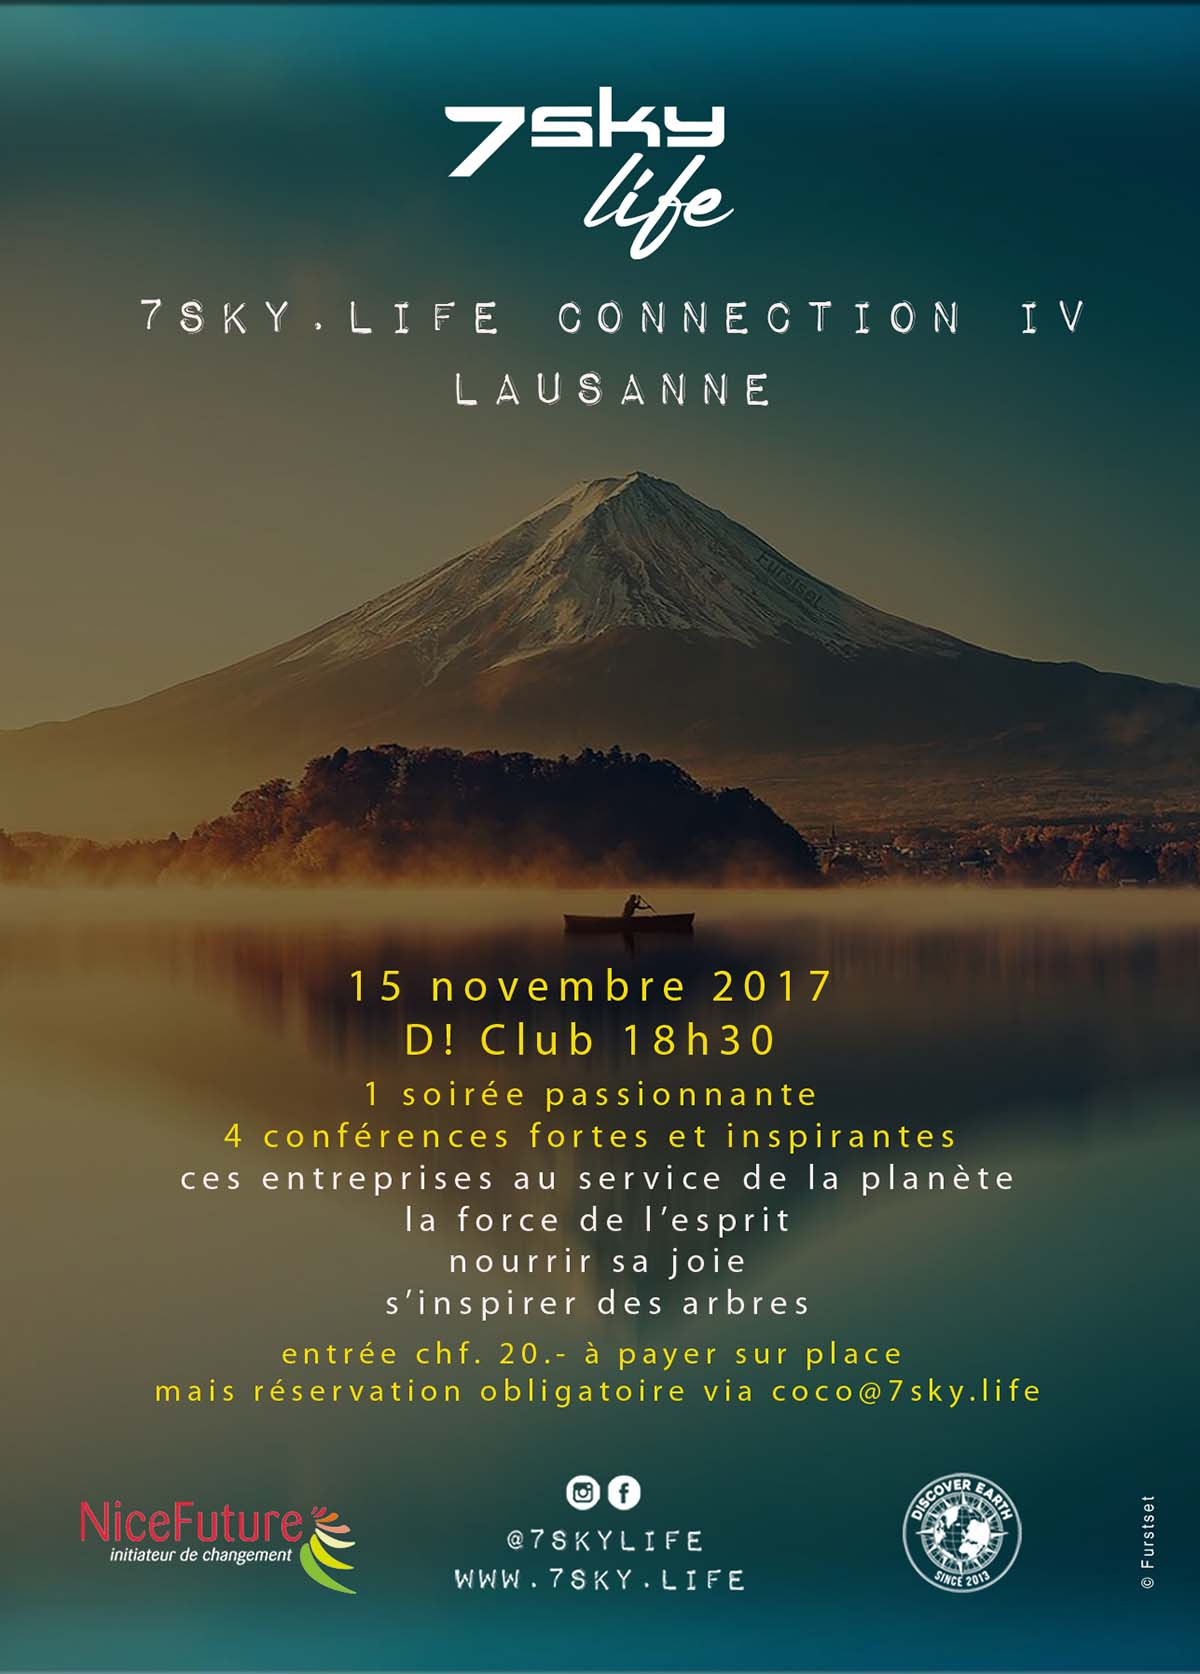 7sky.life Connection IV Lausanne | 18h30 D! Club | 15 novembre 2017